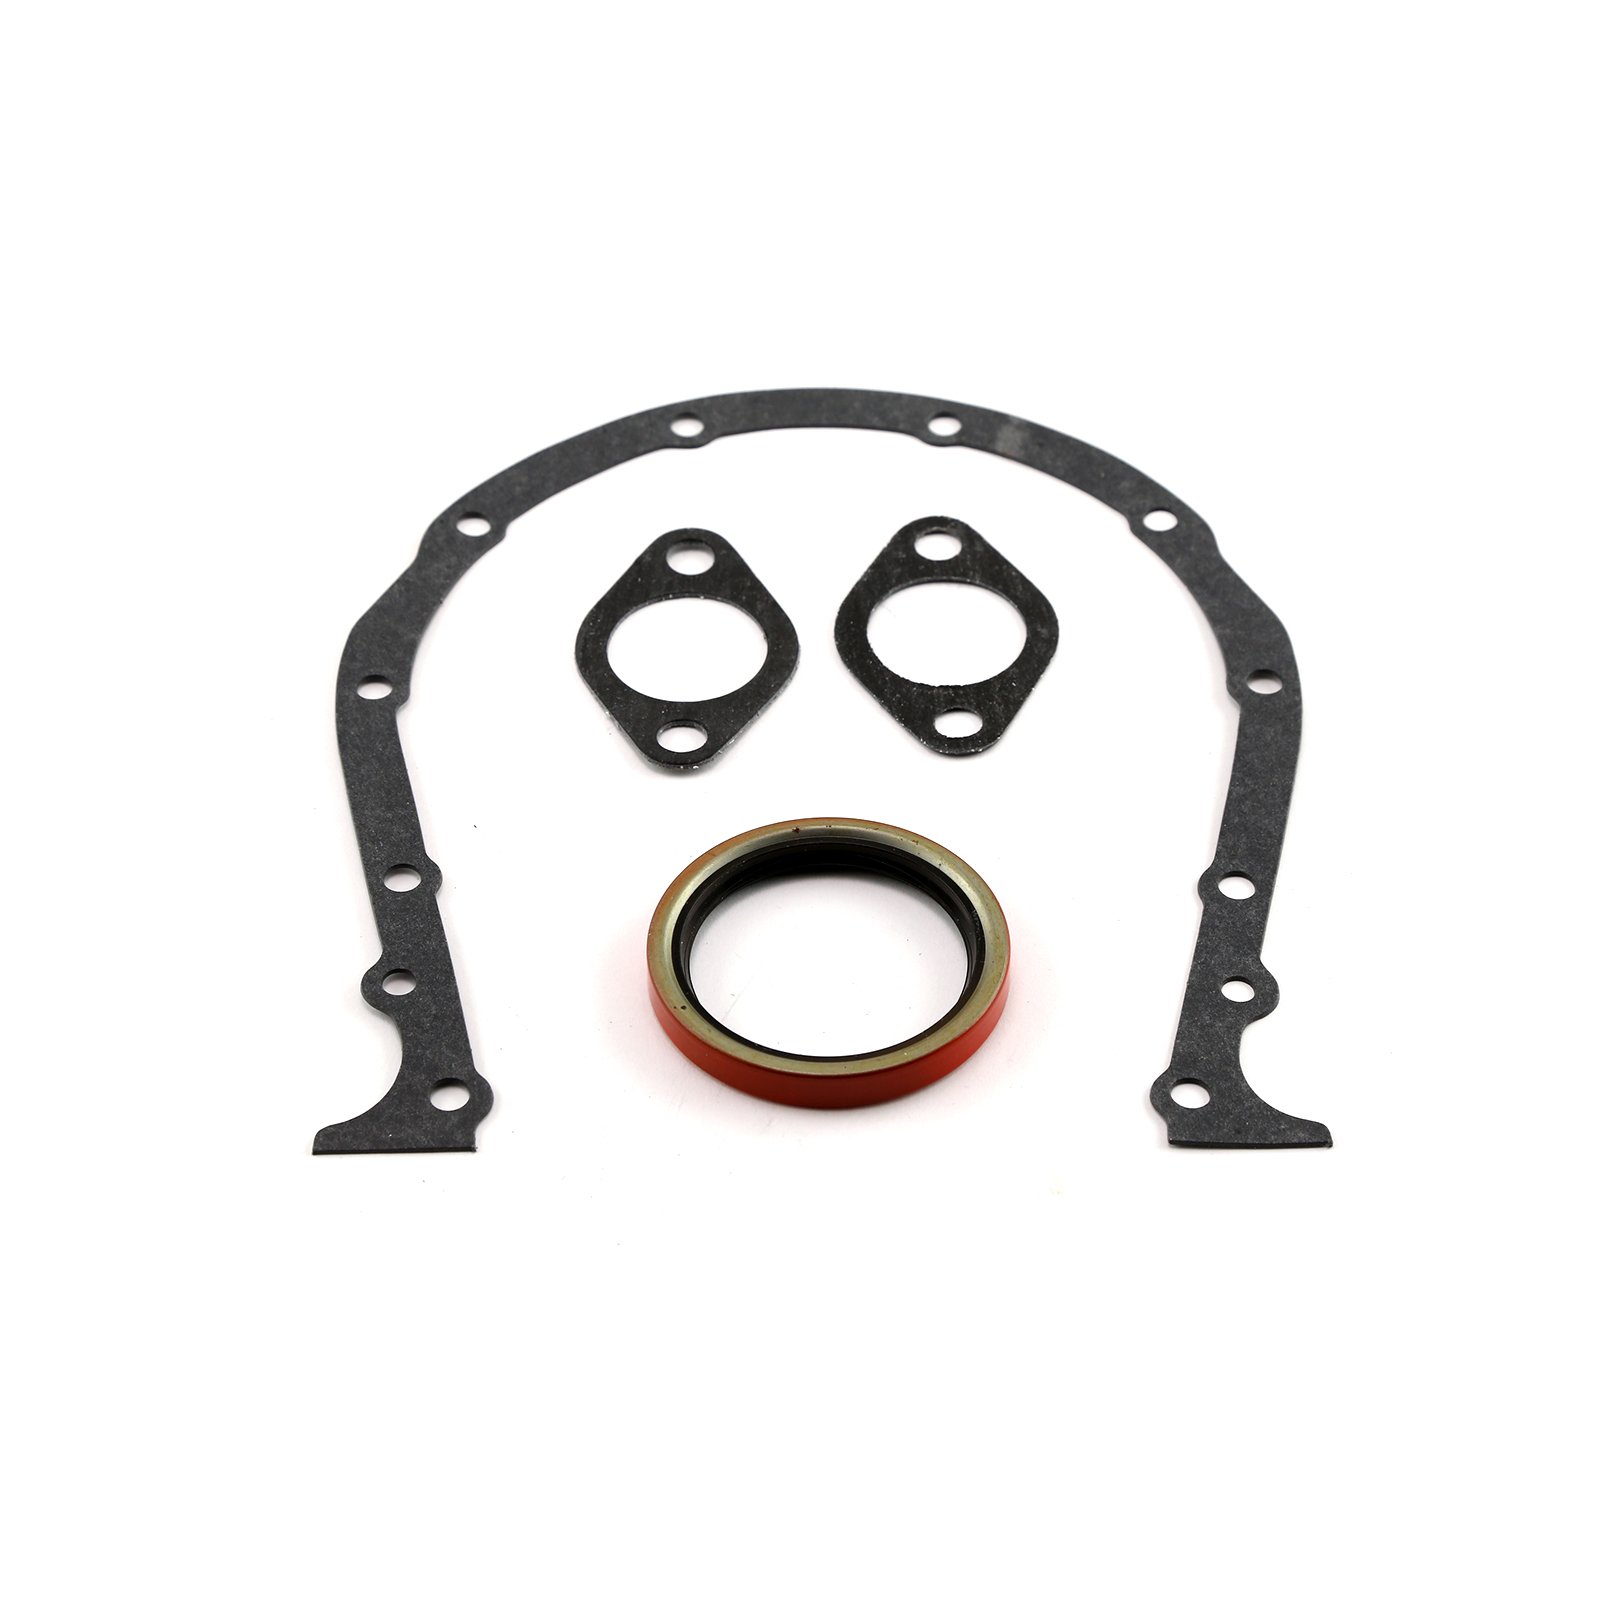 Chevy BBC 454 Timing Cover Gasket Set